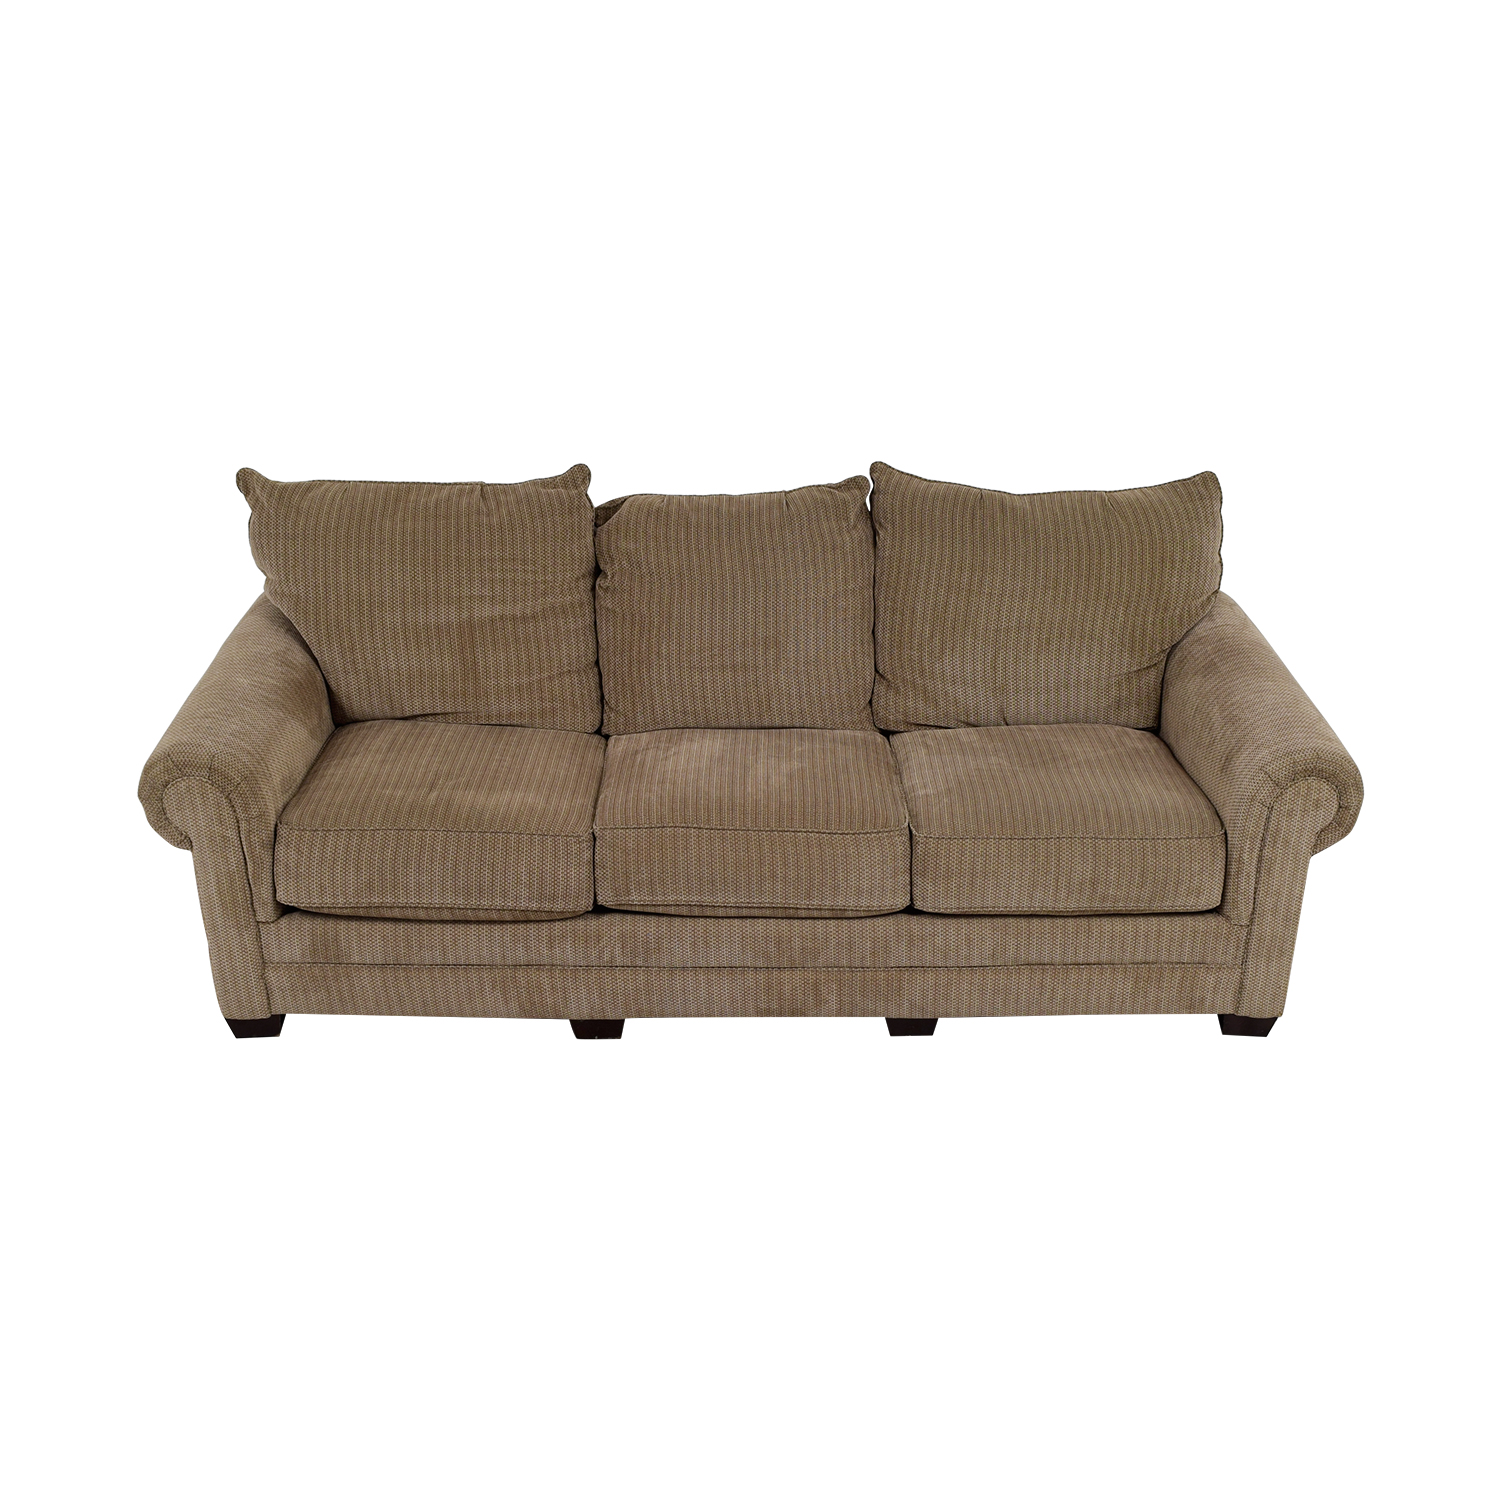 Tan Three-Cushion Couch coupon